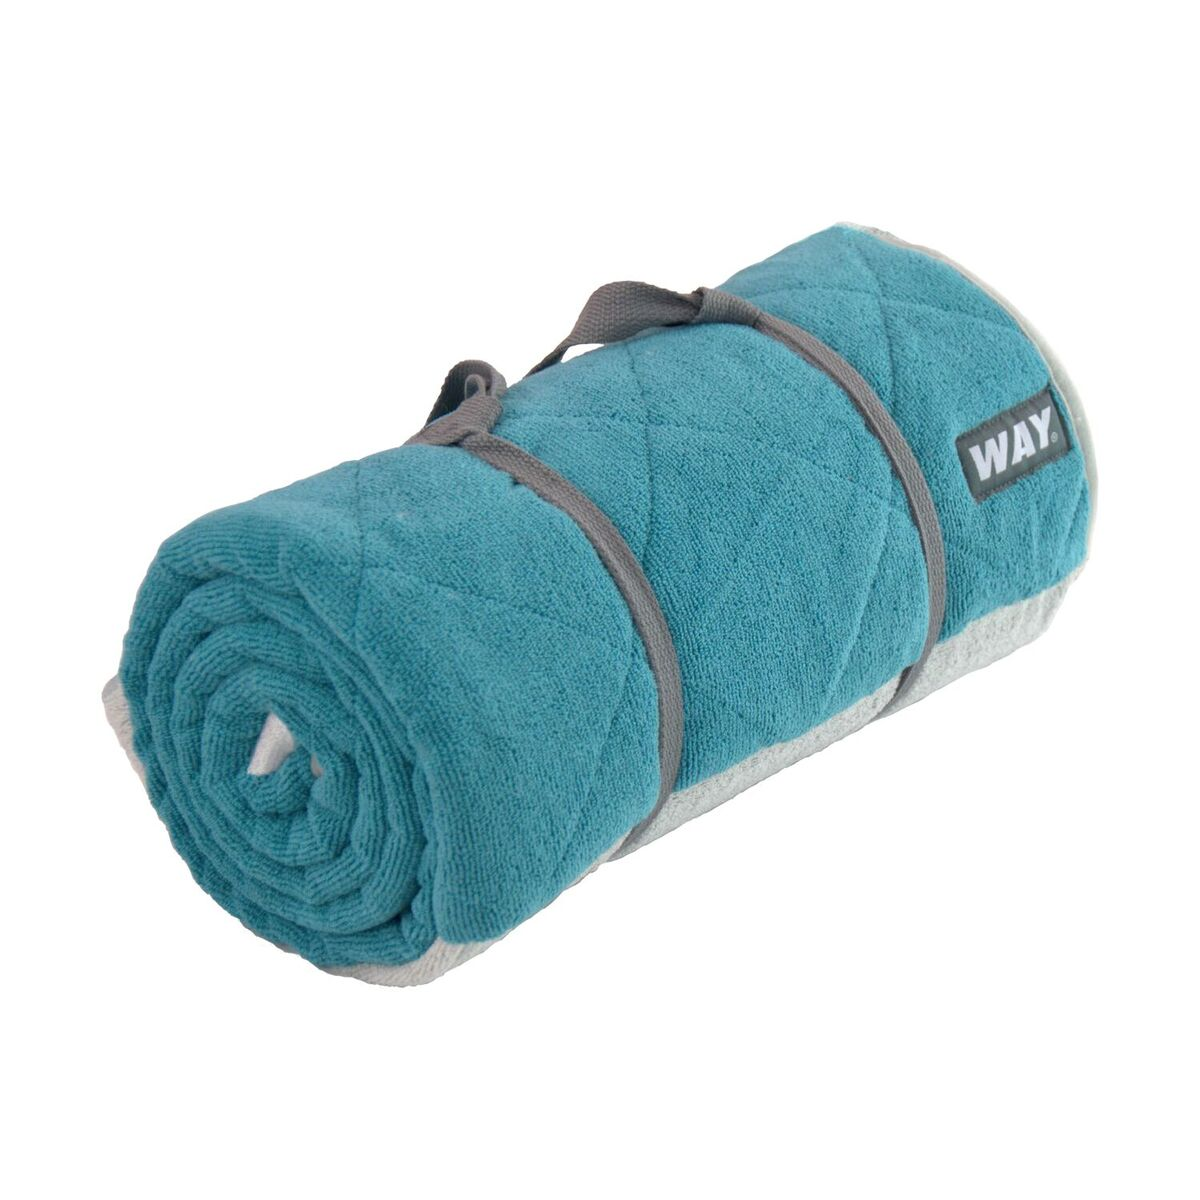 we products towel sq waymat roll are ocean core mat yoga preview by